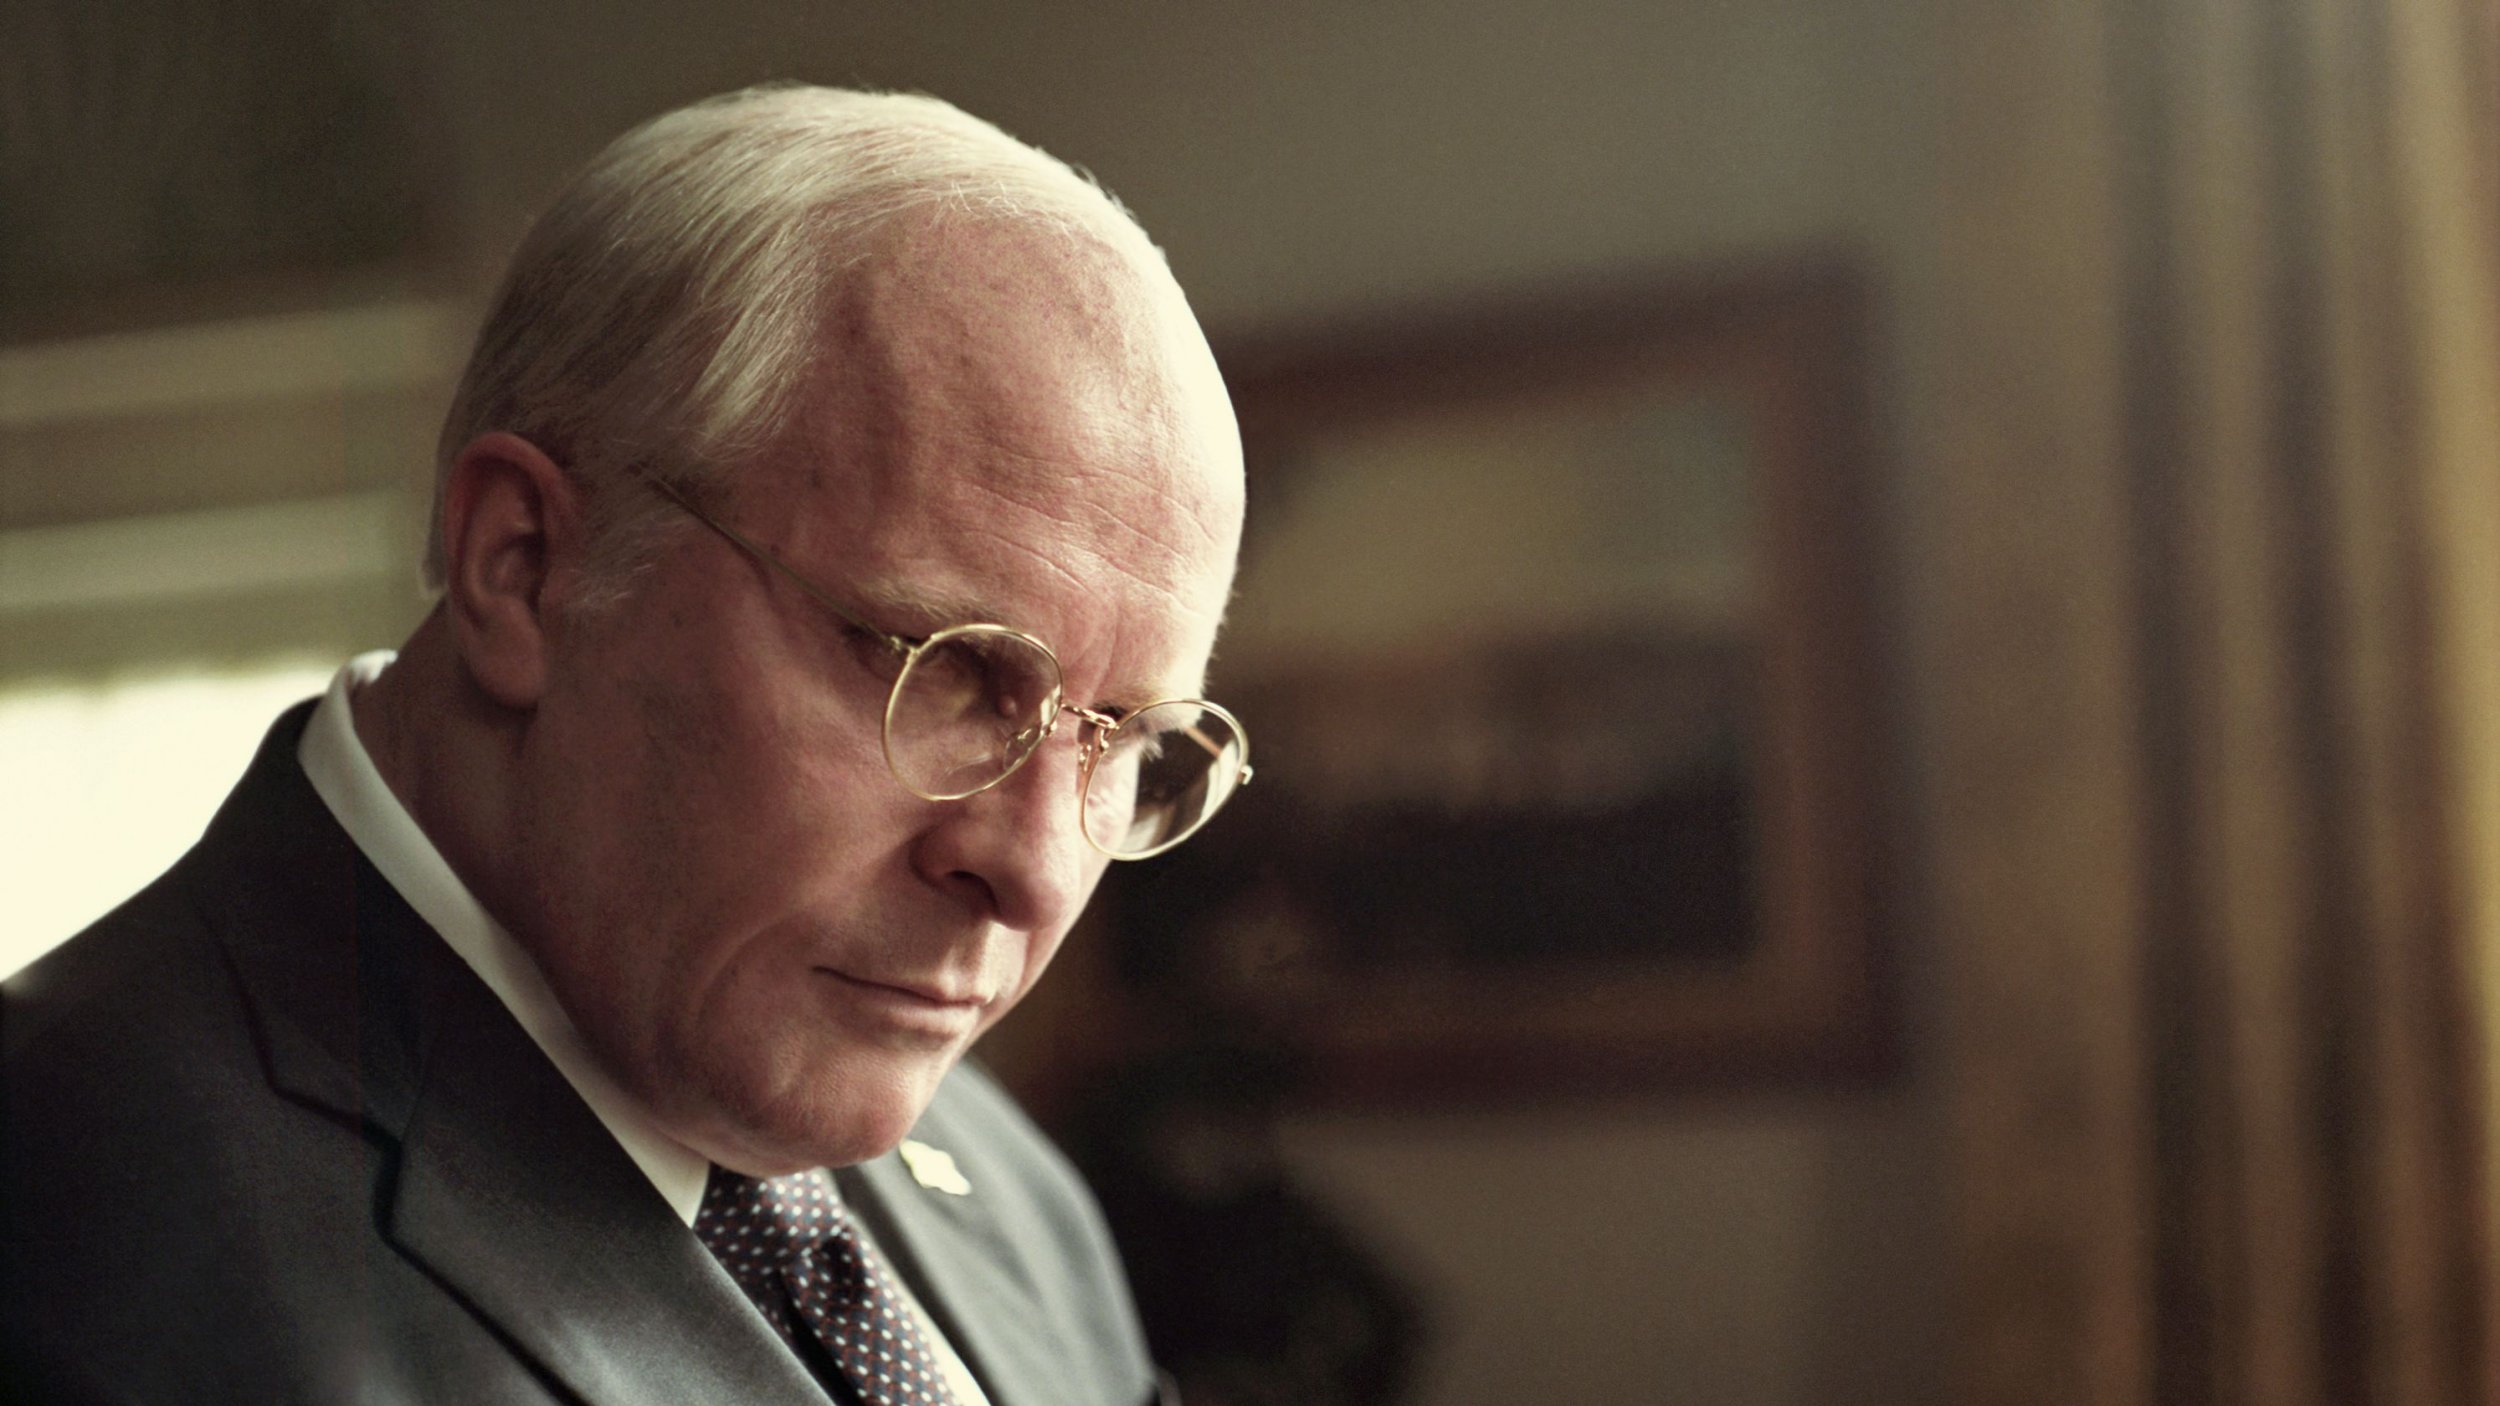 Christian Bale Unrecognizable as Dick Cheney in 'Vice'